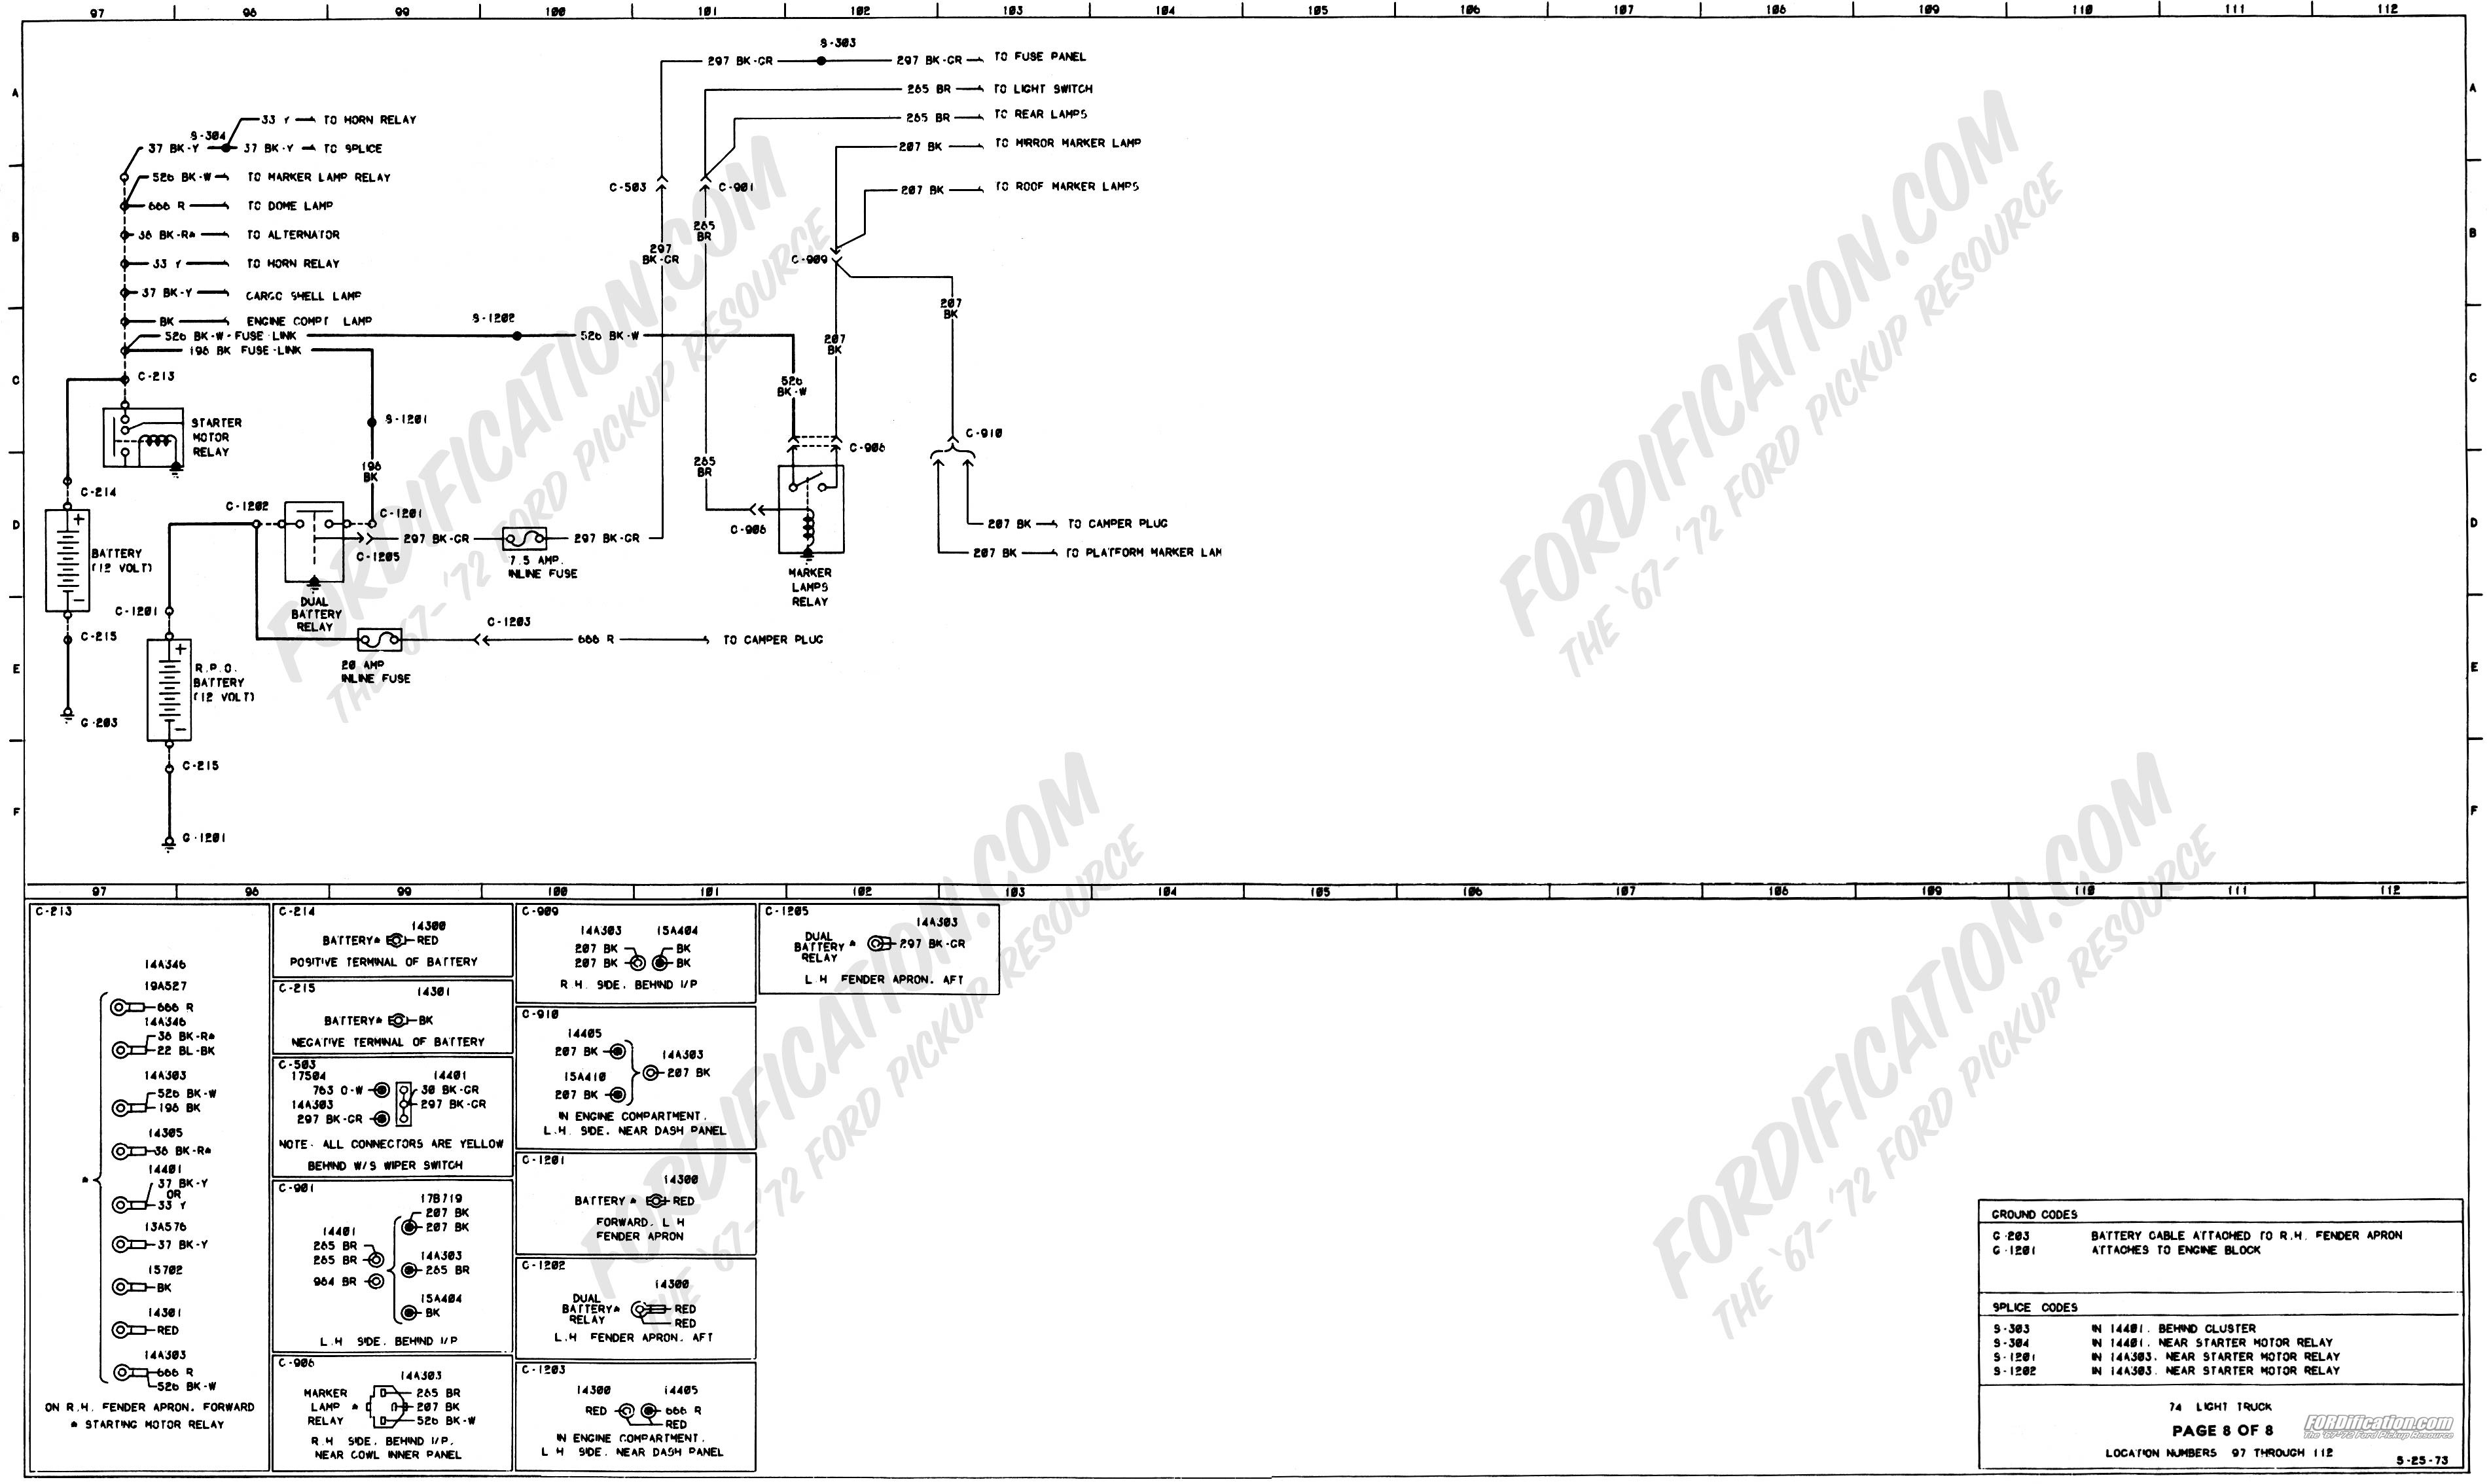 Ford Starter solenoid Wiring Diagram 1973 1979 ford Truck Wiring Diagrams & Schematics fordification Of Ford Starter solenoid Wiring Diagram